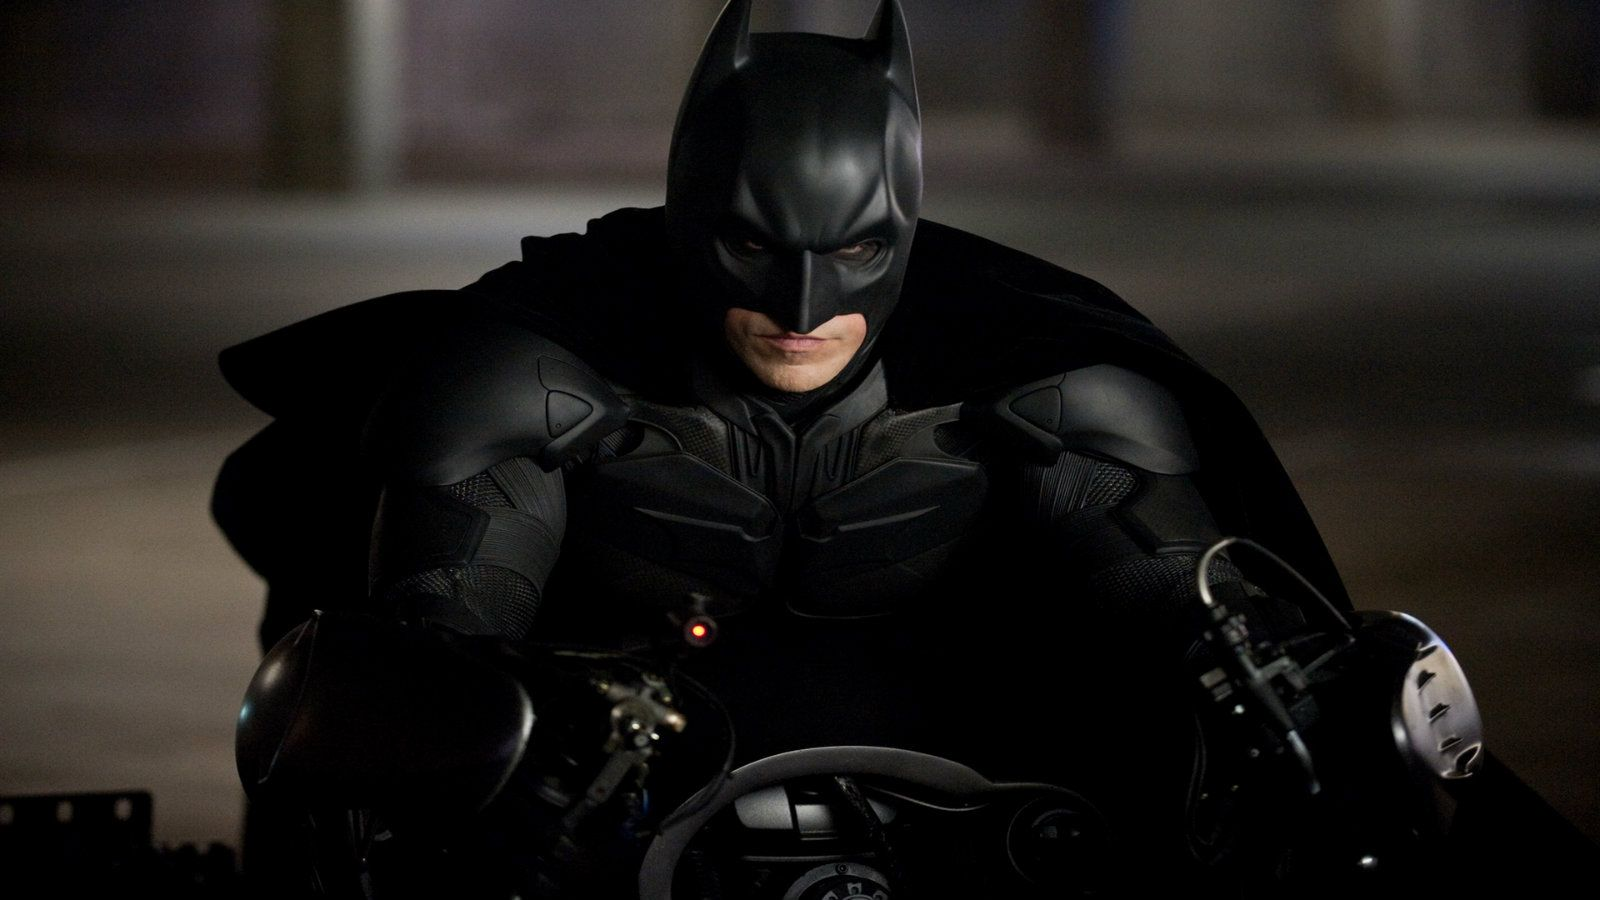 Who Was the Highest Paid Batman?